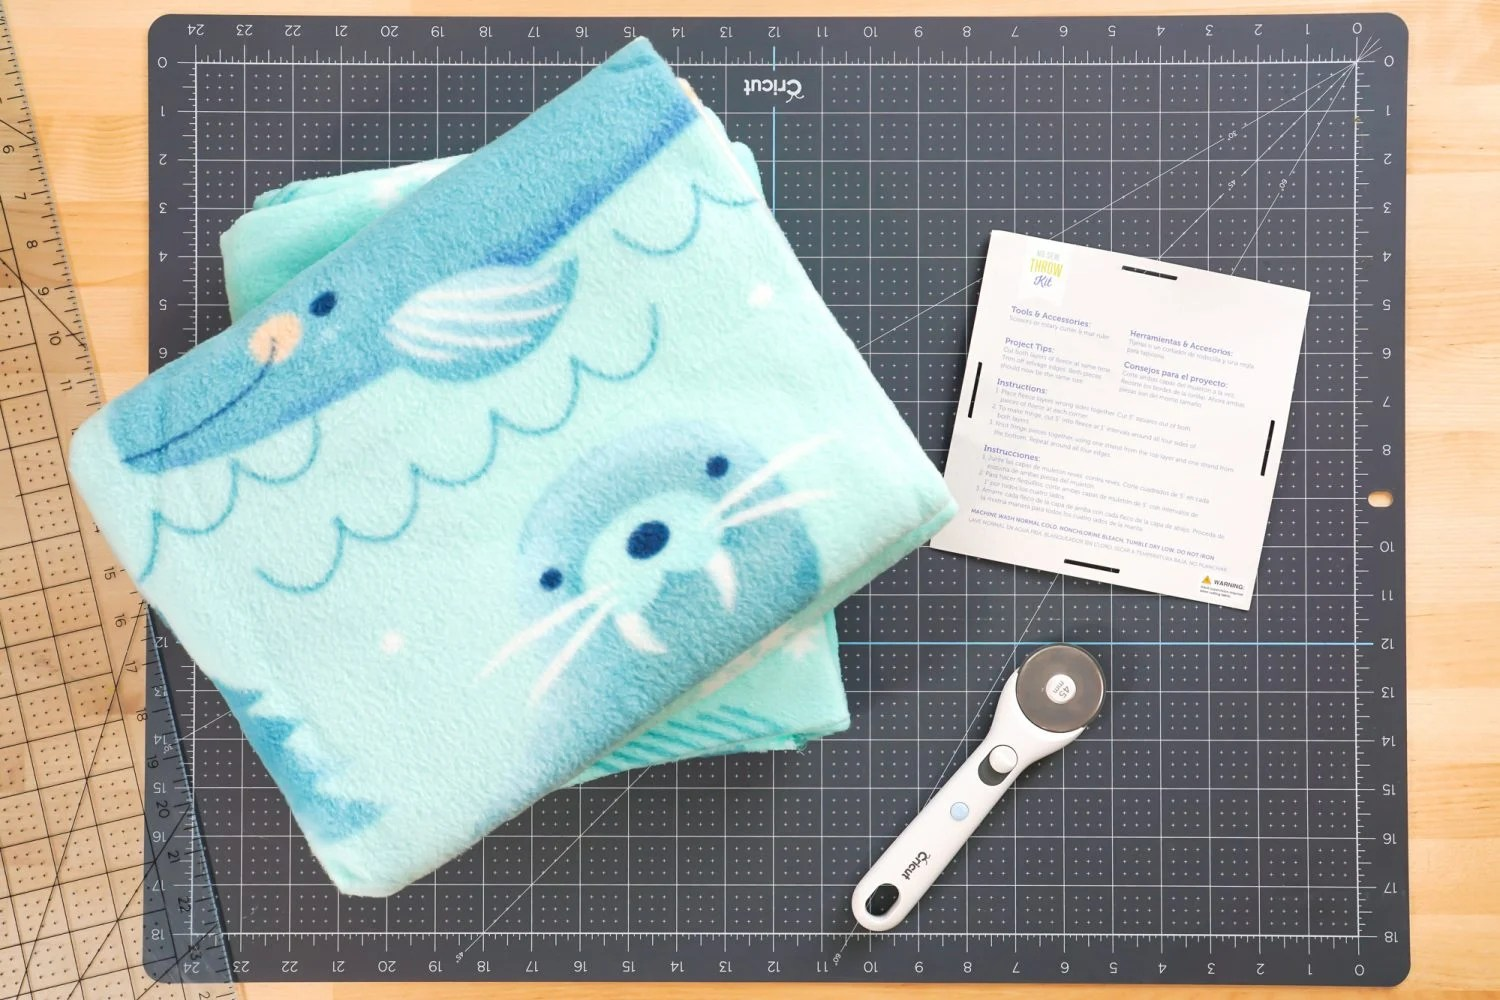 Fleece blanket kit with rotary cutter and instructions from tag